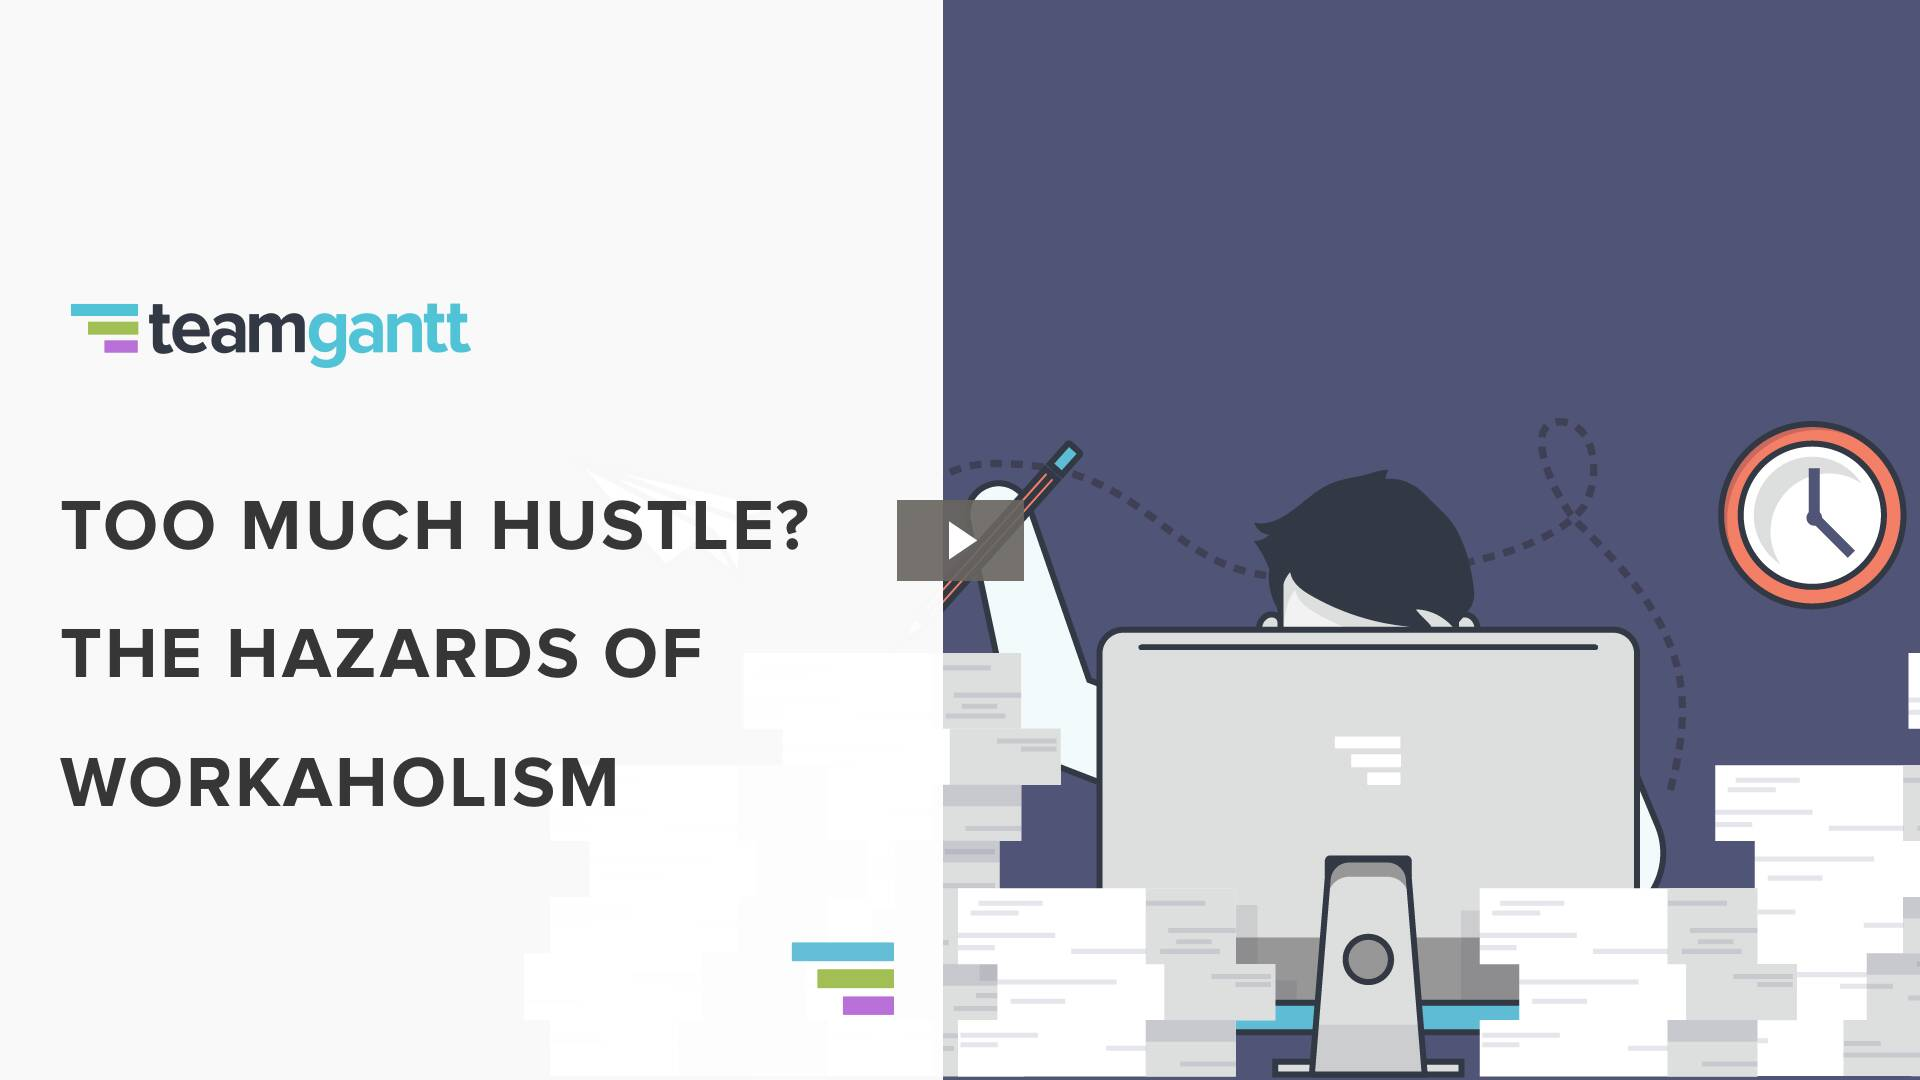 Too Much Hustle? The Hazards of Workaholism